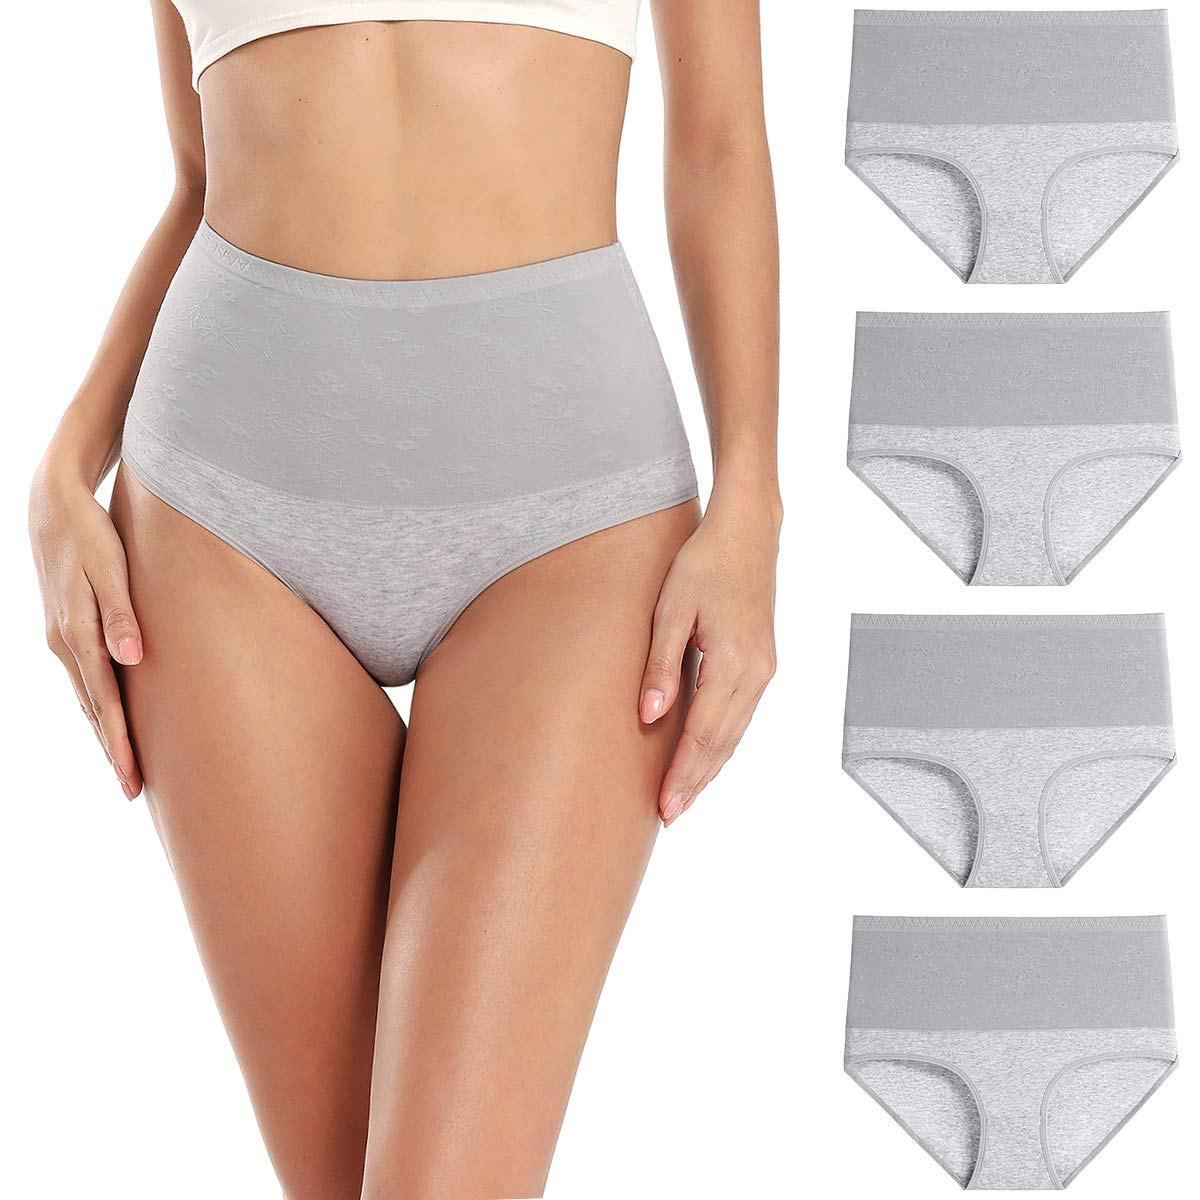 wirarpa Women's Cotton Stretch Underwear Briefs Soft Breathable High Waisted Full Coverage Ladies Panties Multipack